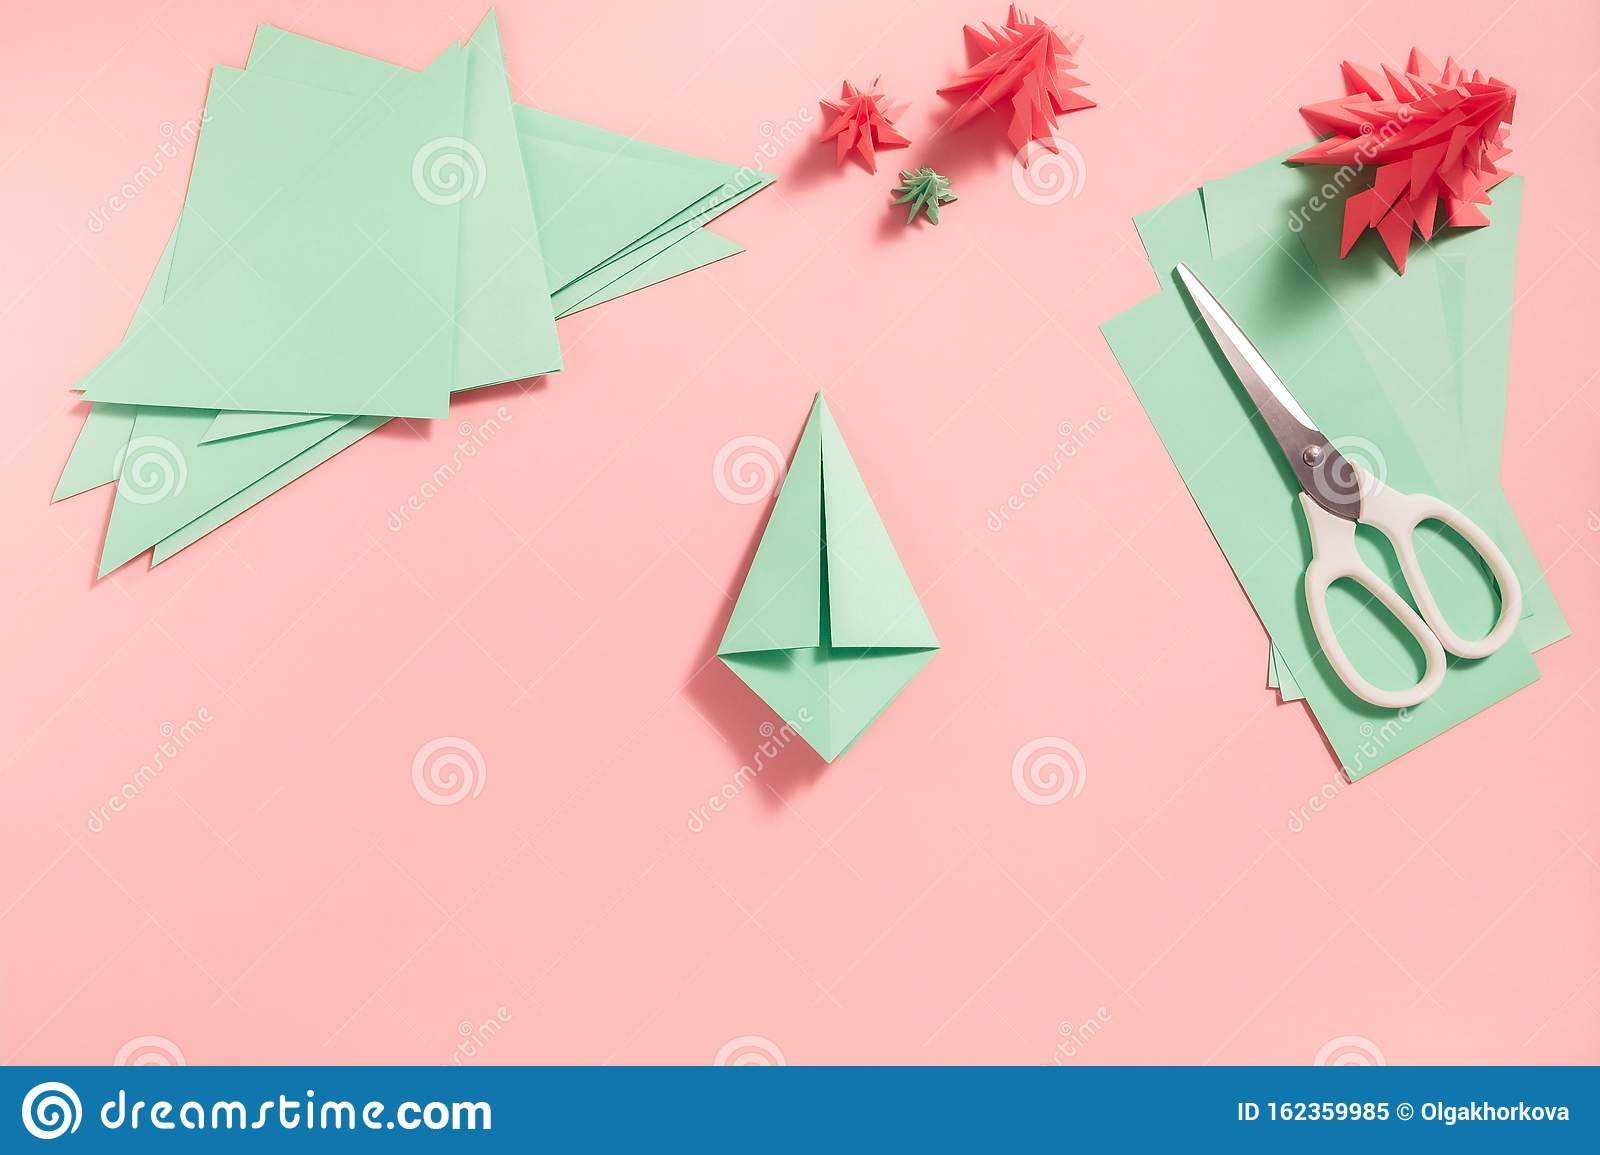 Christmas Ornament Origami Folded Pictures   Origami natale ...   1155x1600